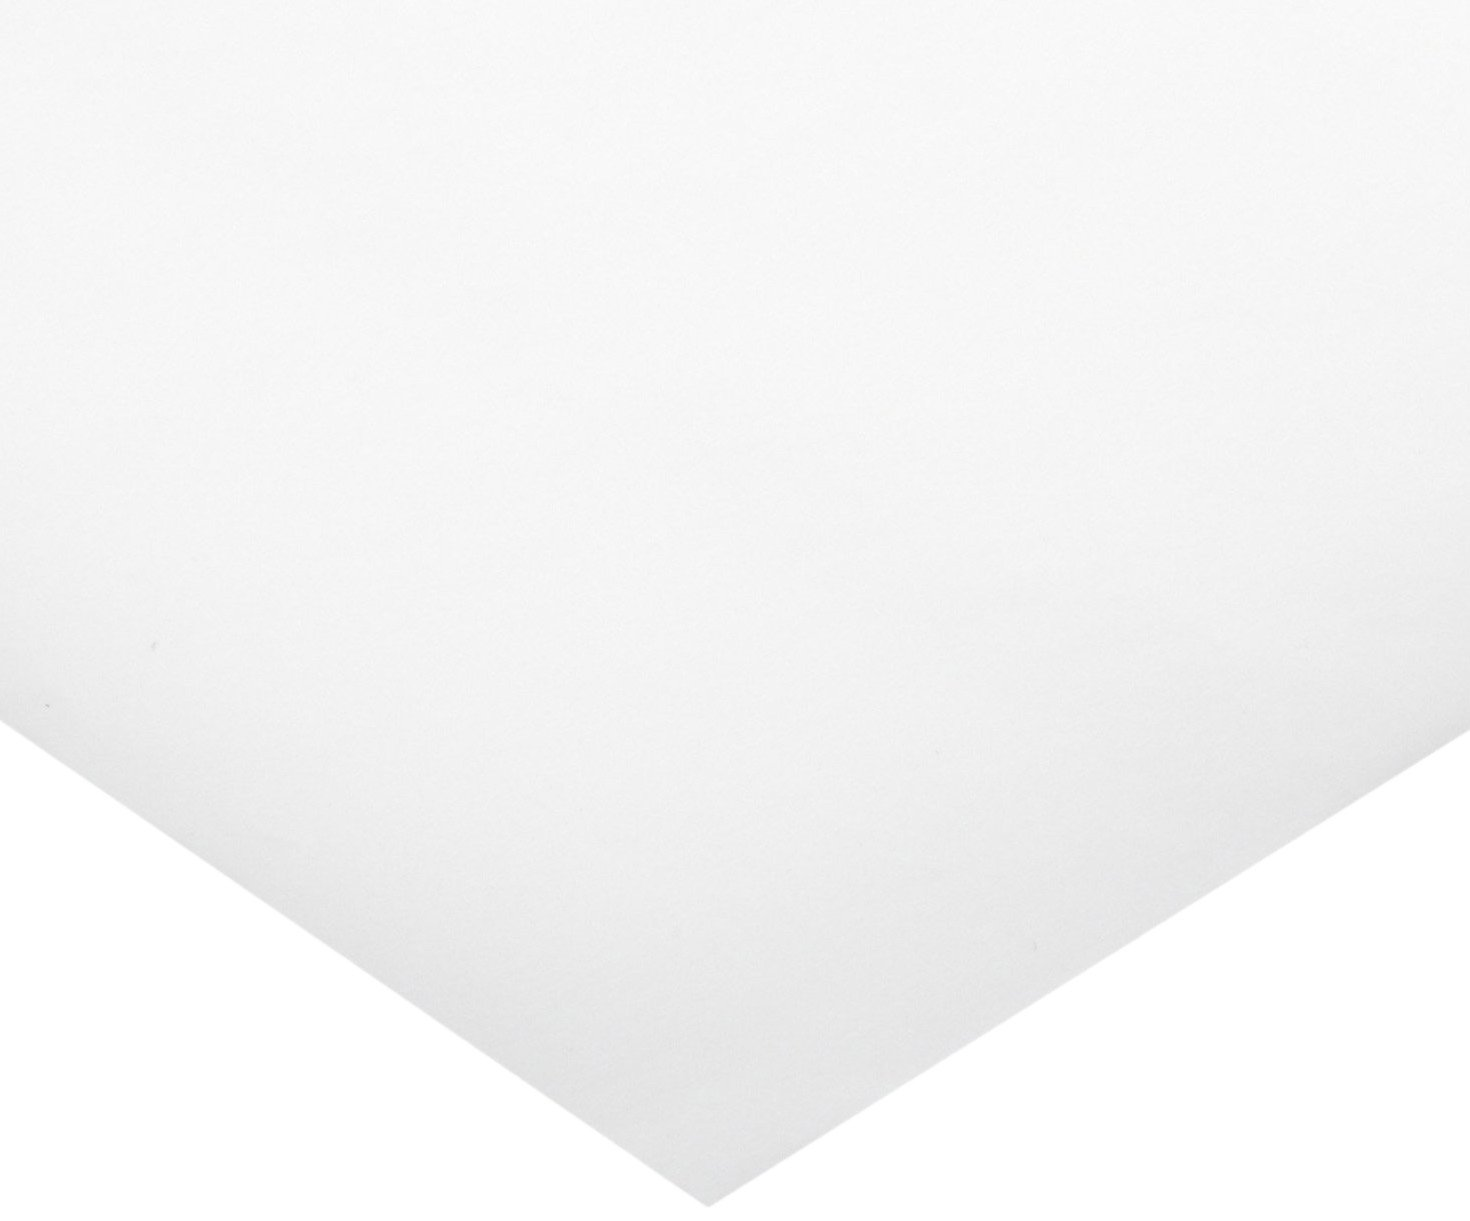 """Georgia-Pacific Dixie PIZ121 White 35lbs Parchment Silicon-Treated Pizza Sheet, 12"""" Length x 12"""" Width (Case of 1000)"""